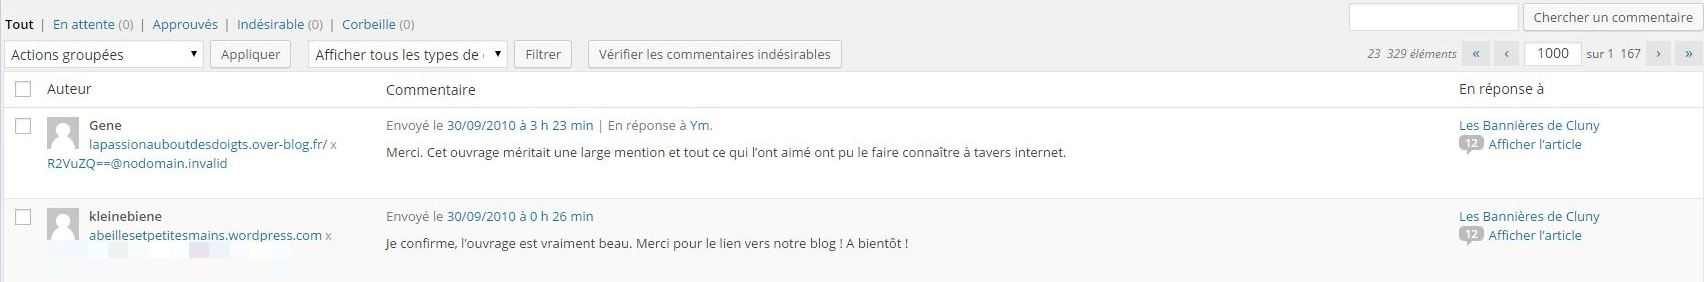 Commentaire 1000